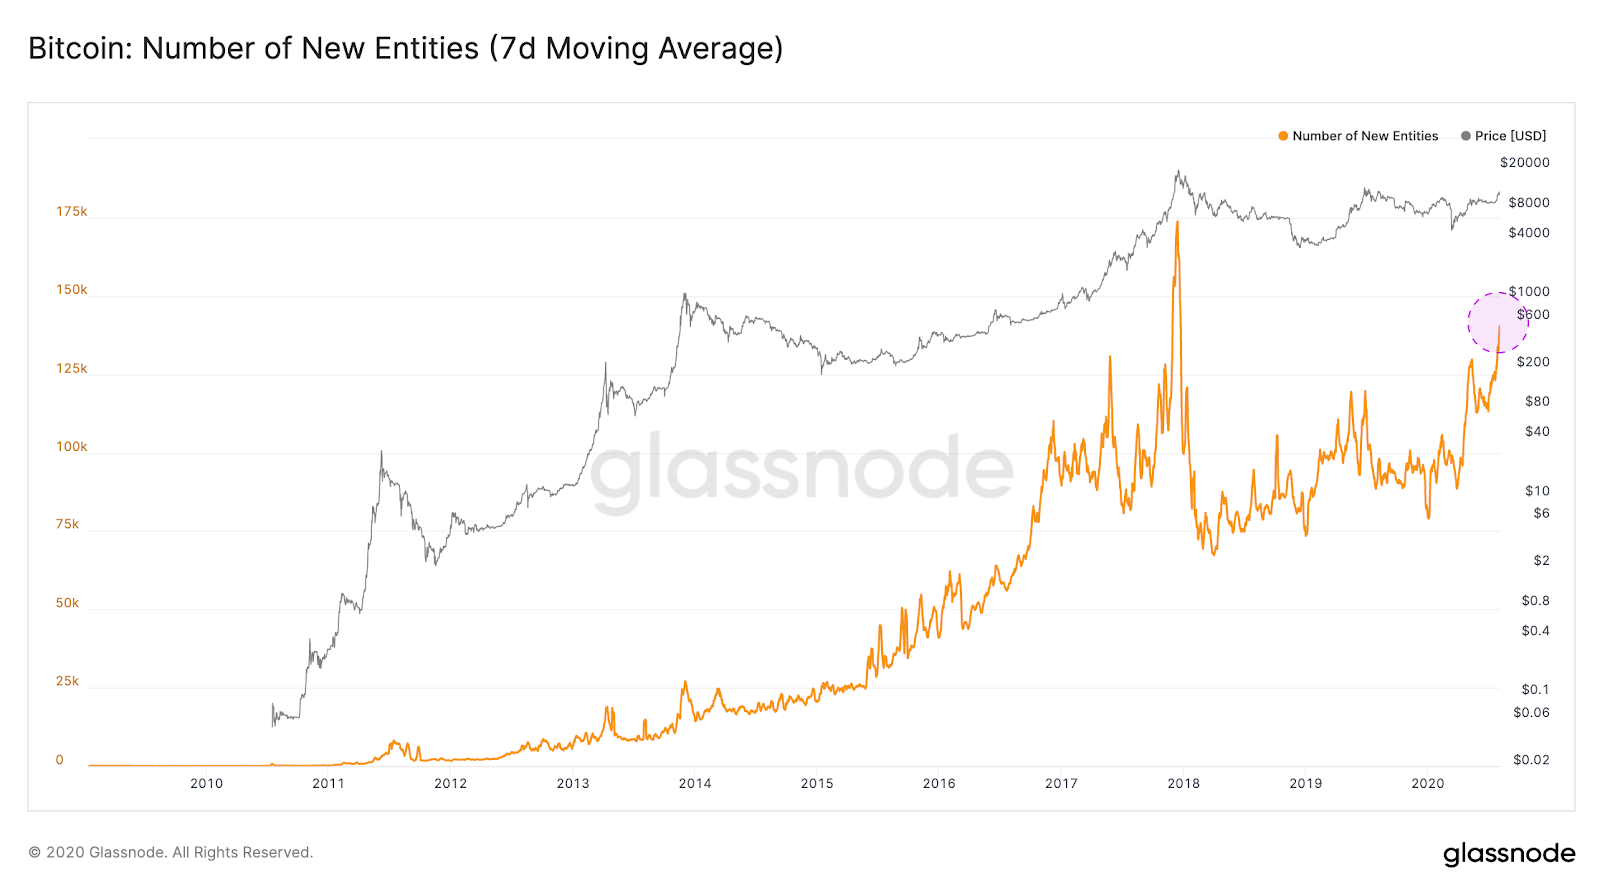 Bitcoin new entities 7-day moving average chart